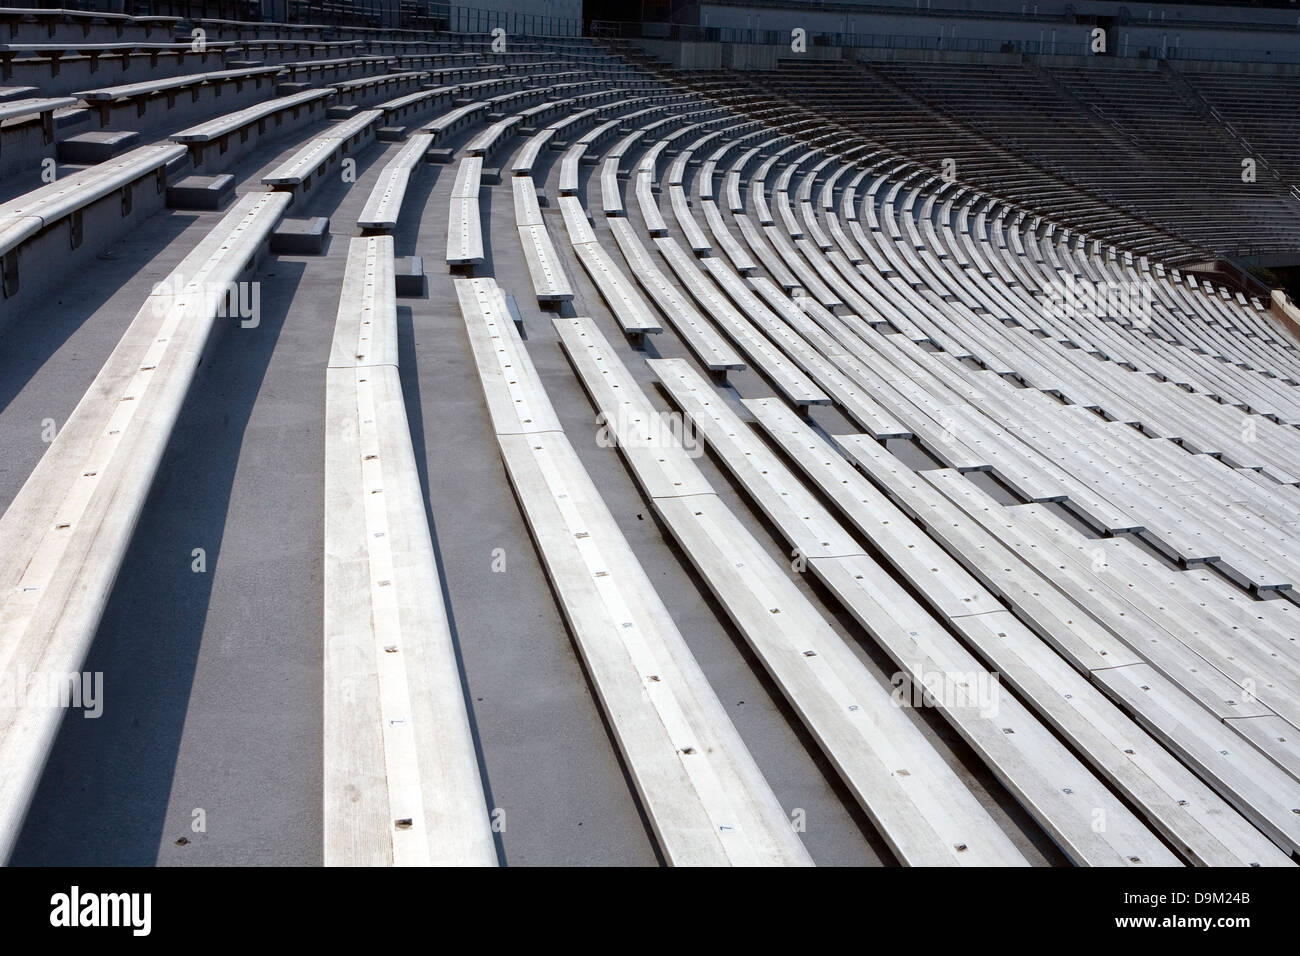 stadium chair for bleachers ikea clear chairs bleacher seats stock photos images alamy general view of rows empty seating at scott university virginia on